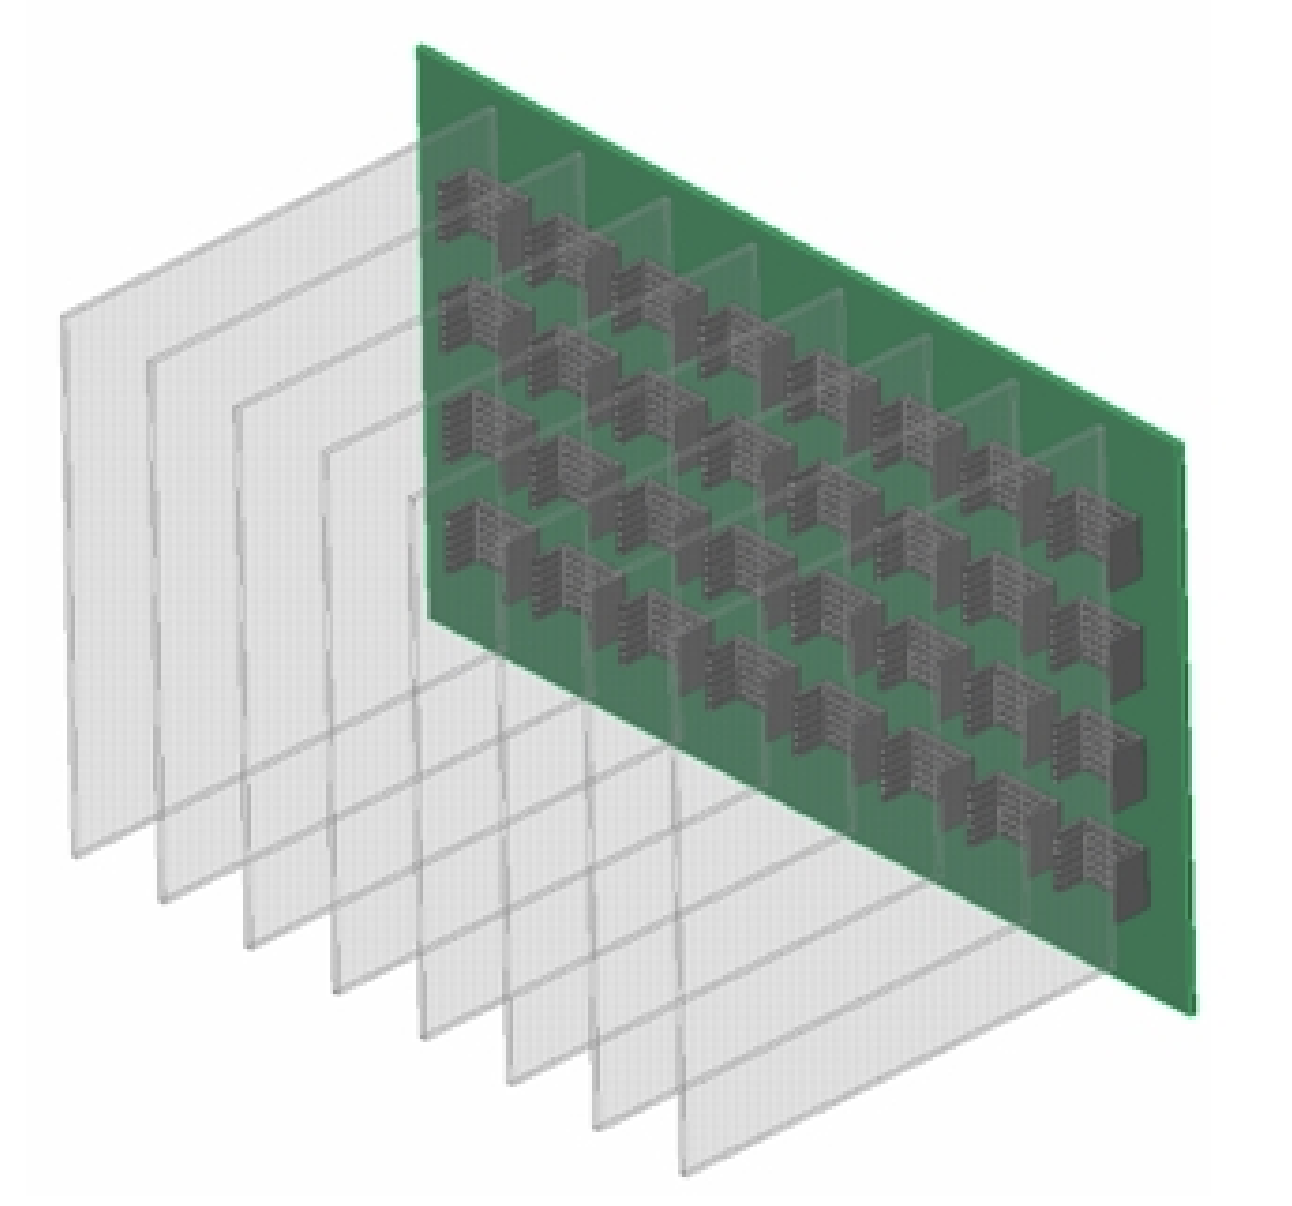 Component Placement Strategies In Multi Board Pcb Systems Circuit Assembly Buy Boardpcb The Shelf Is Populated With Pcbs Loaded Vertical Orientation And They Are Connected Using A 19 X 12 Backplane That Assembled At Rear Of